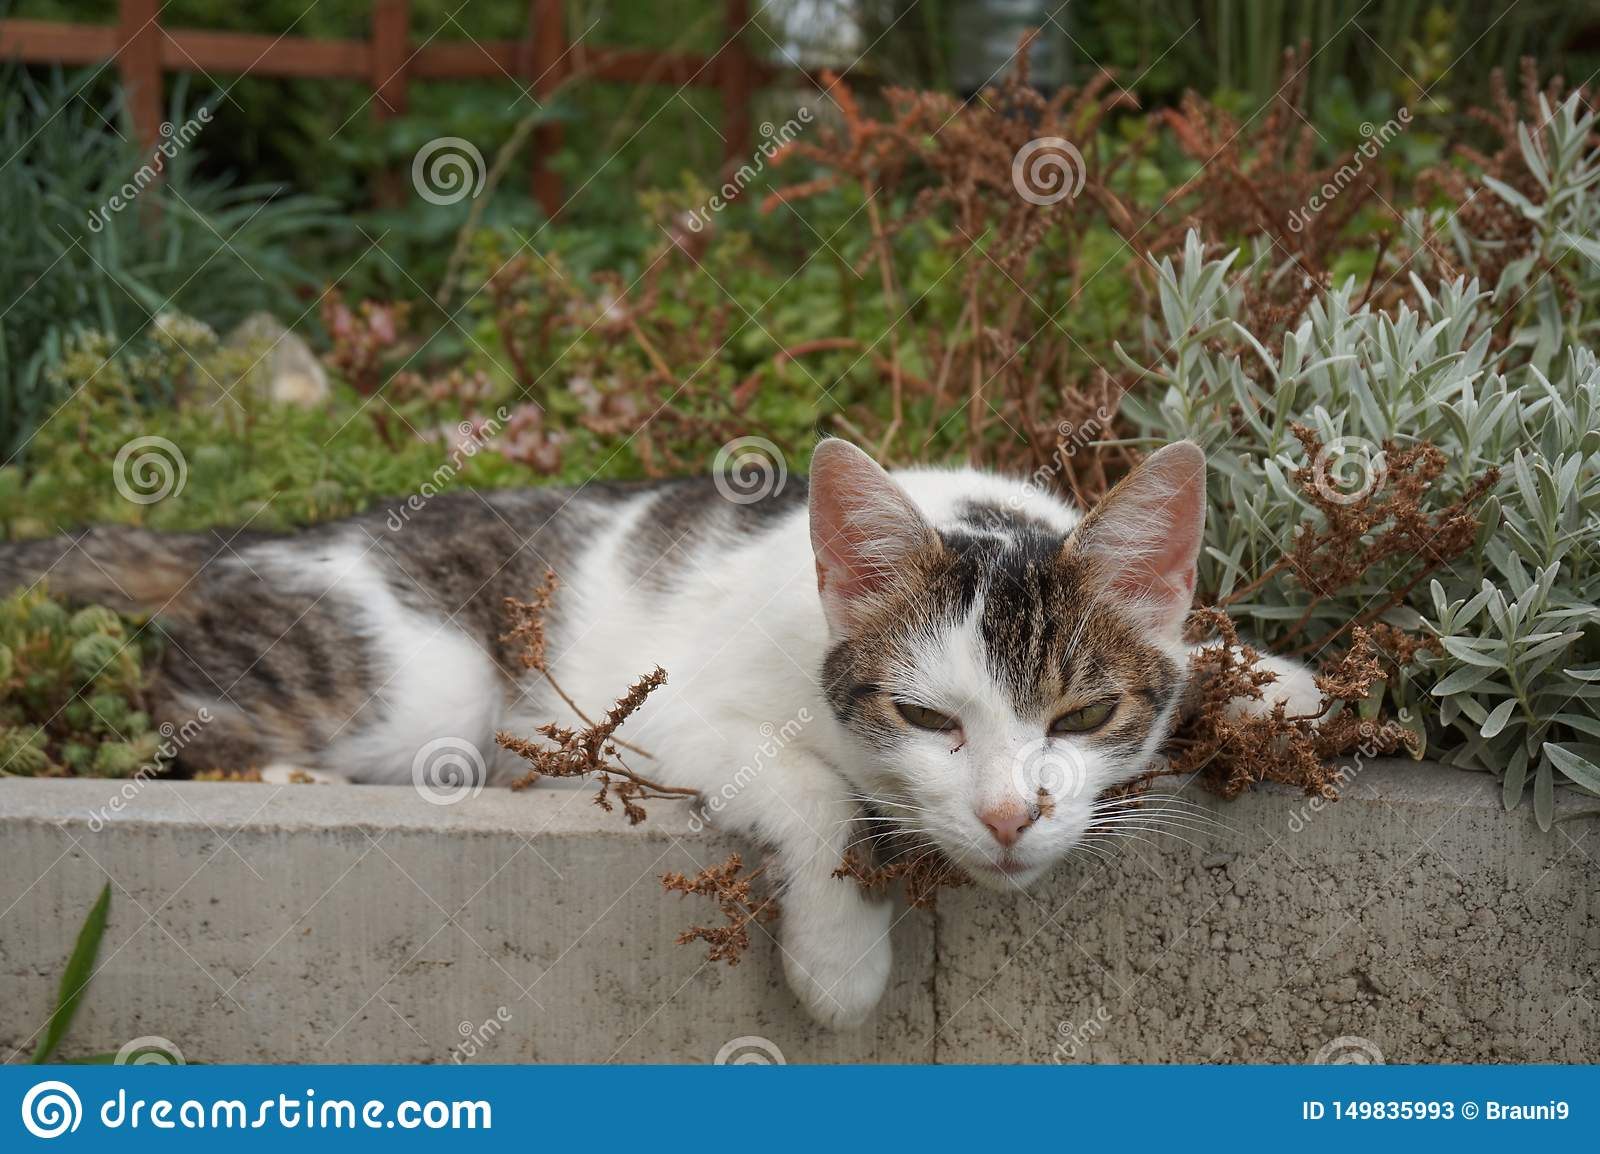 Cute Cat lies in a flower bed and fully relaxed